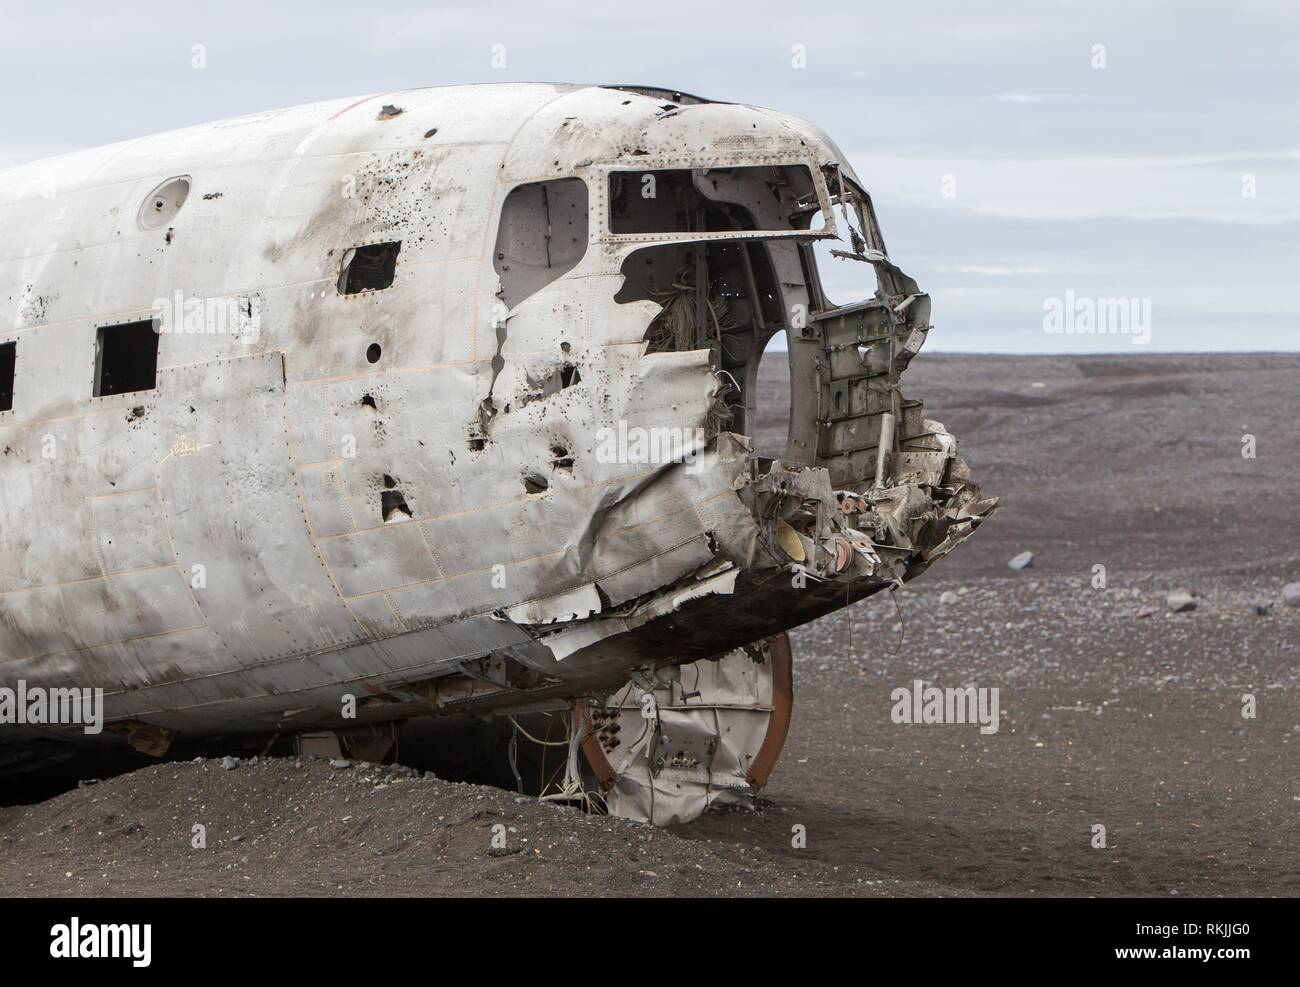 The abandoned wreck of a US military plane on Solheimasandur beach near Vik, Southern Iceland. - Stock Image